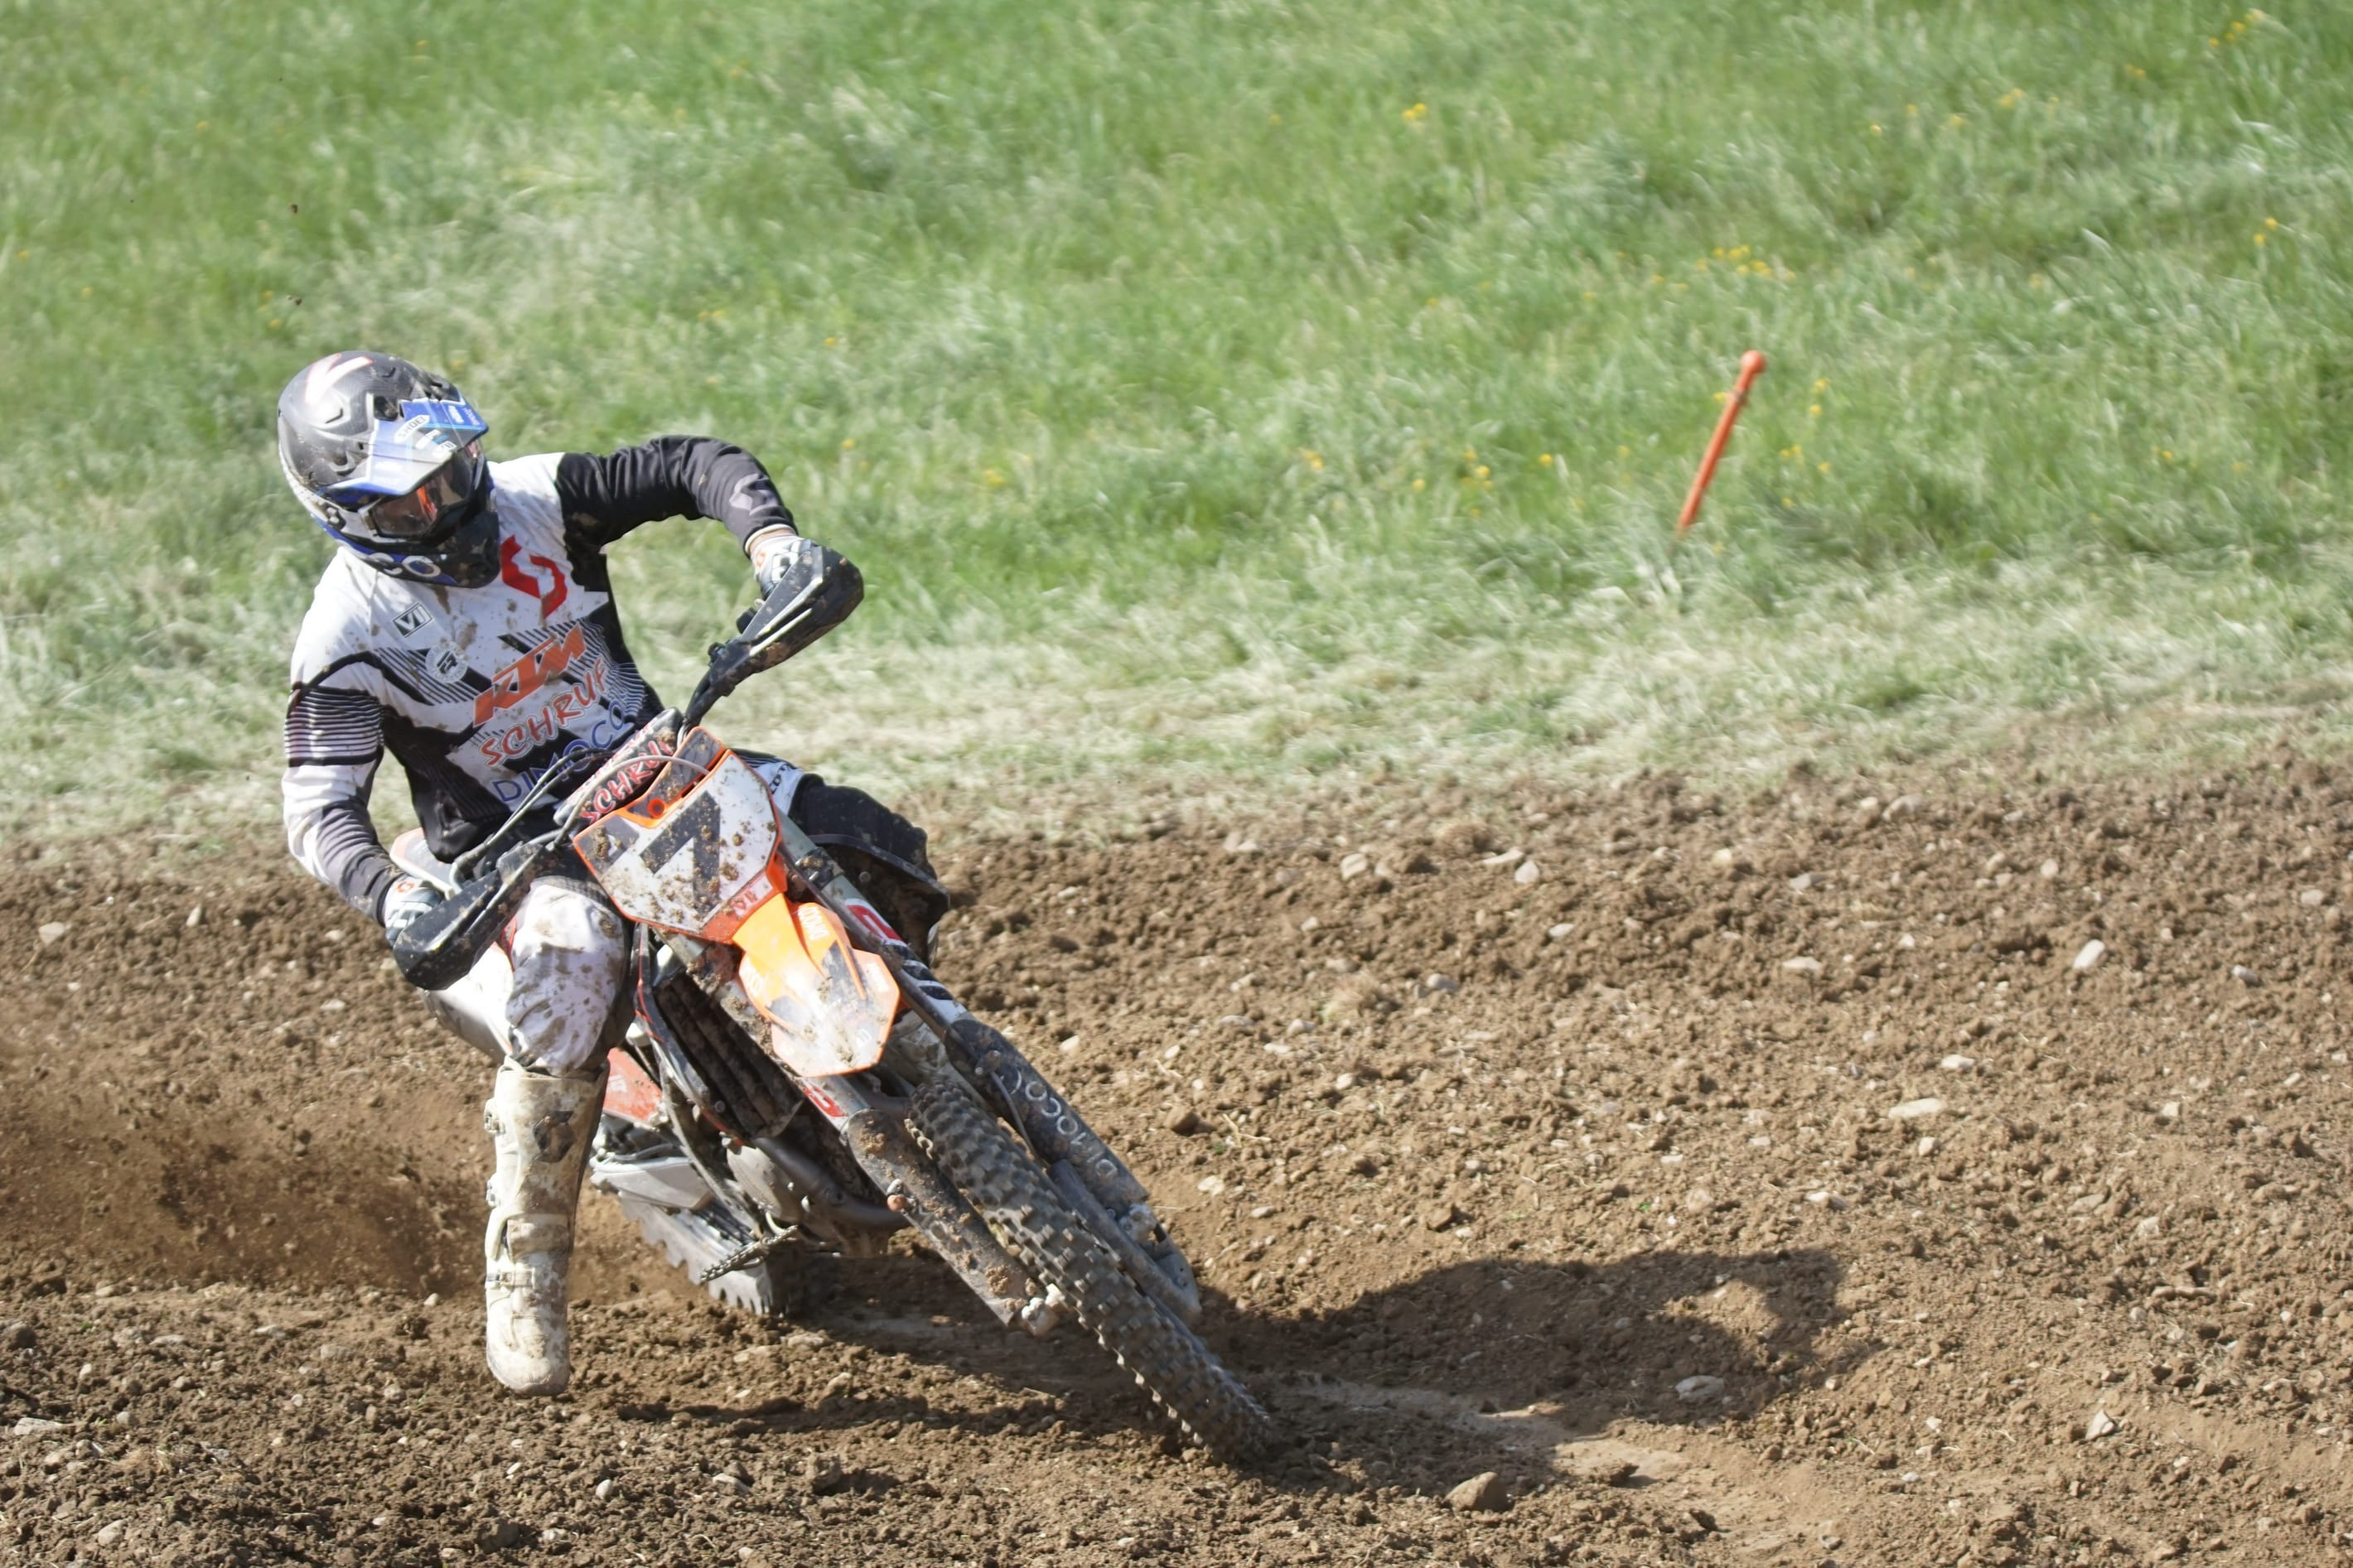 DSC 834_Moto Cross Sittendorf Teil1 am 29.04.2018